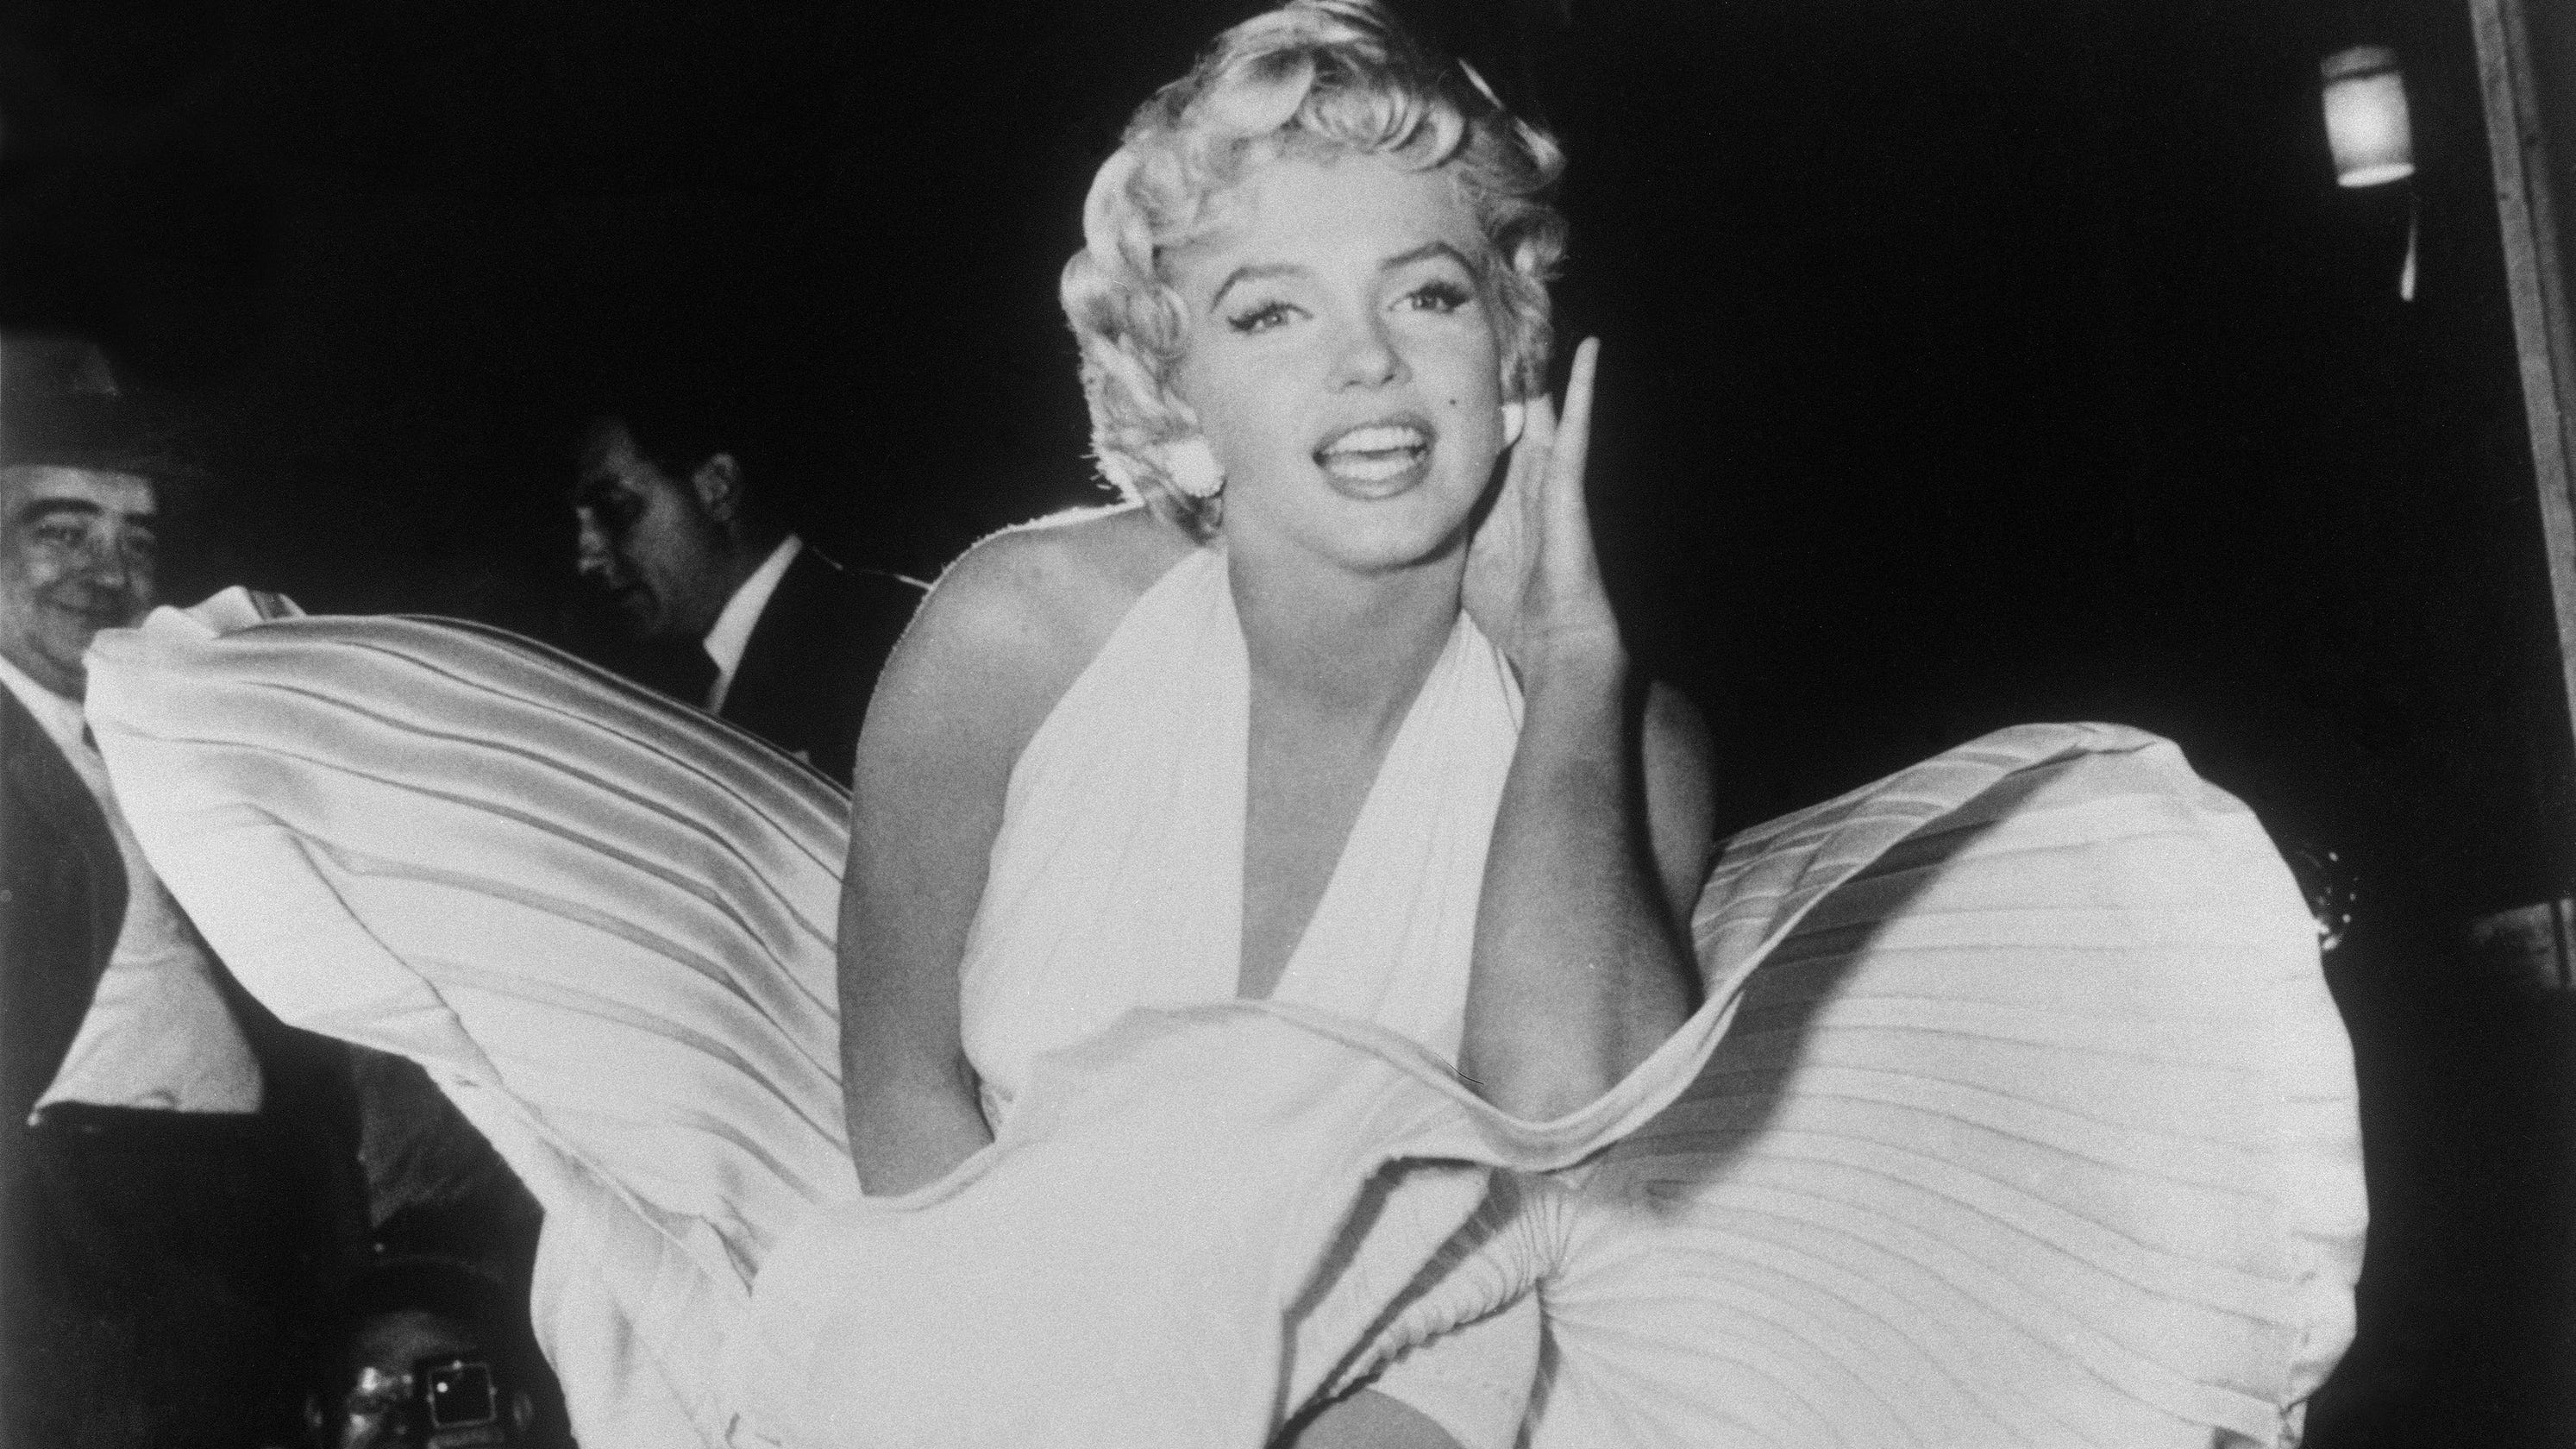 marilyn monroe auction featuring iconic white dress earns 1 6m